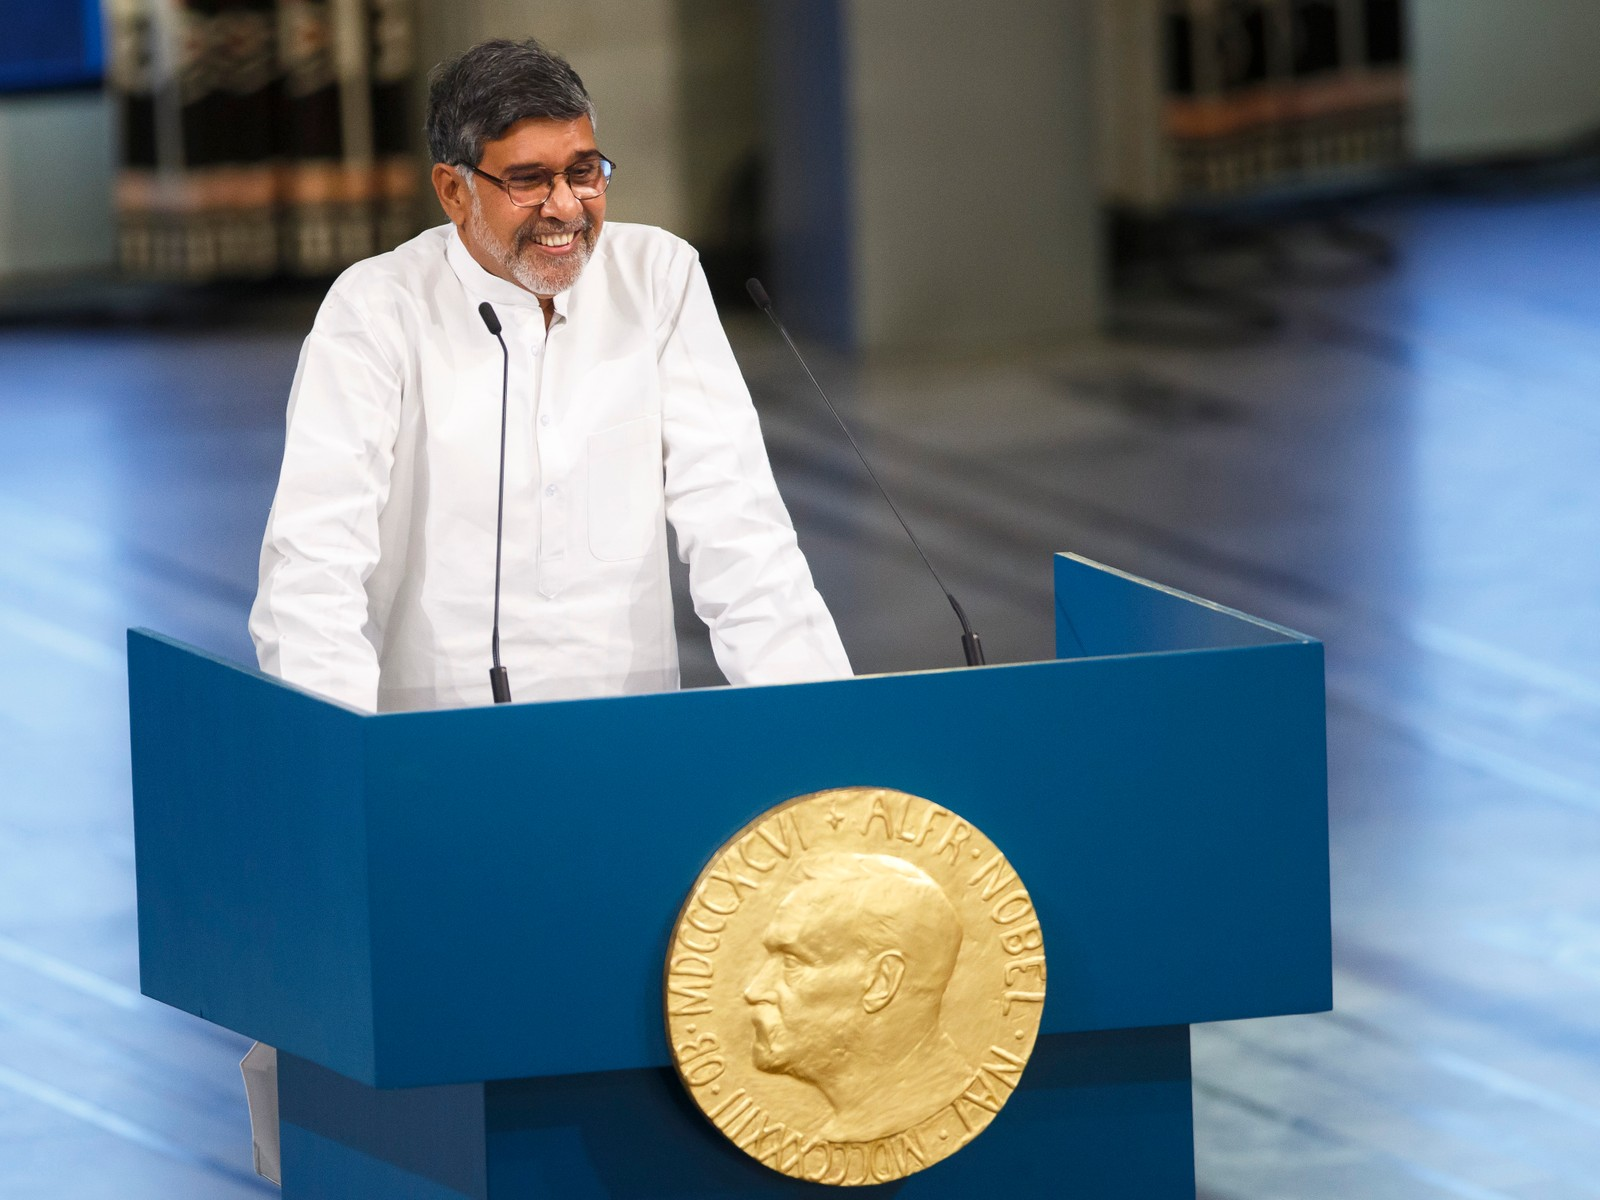 HOLDT RØRENDE TALE: Nobel Peace Prize winner Kailash Satyarthi, from India smiles as he makes an address after being awarded the Nobel Peace Prize during the Nobel Peace Prize award ceremony in Oslo, Norway, Wednesday, Dec. 10, 2014. The Nobel Peace Prize is being shared between Malala Yousafzai, the 17-year-old Taliban attack survivor, and the youngest Nobel Prize winner ever, and Indian children's rights activist Kailash Satyarthi in a ceremony in Oslo on Wednesday.